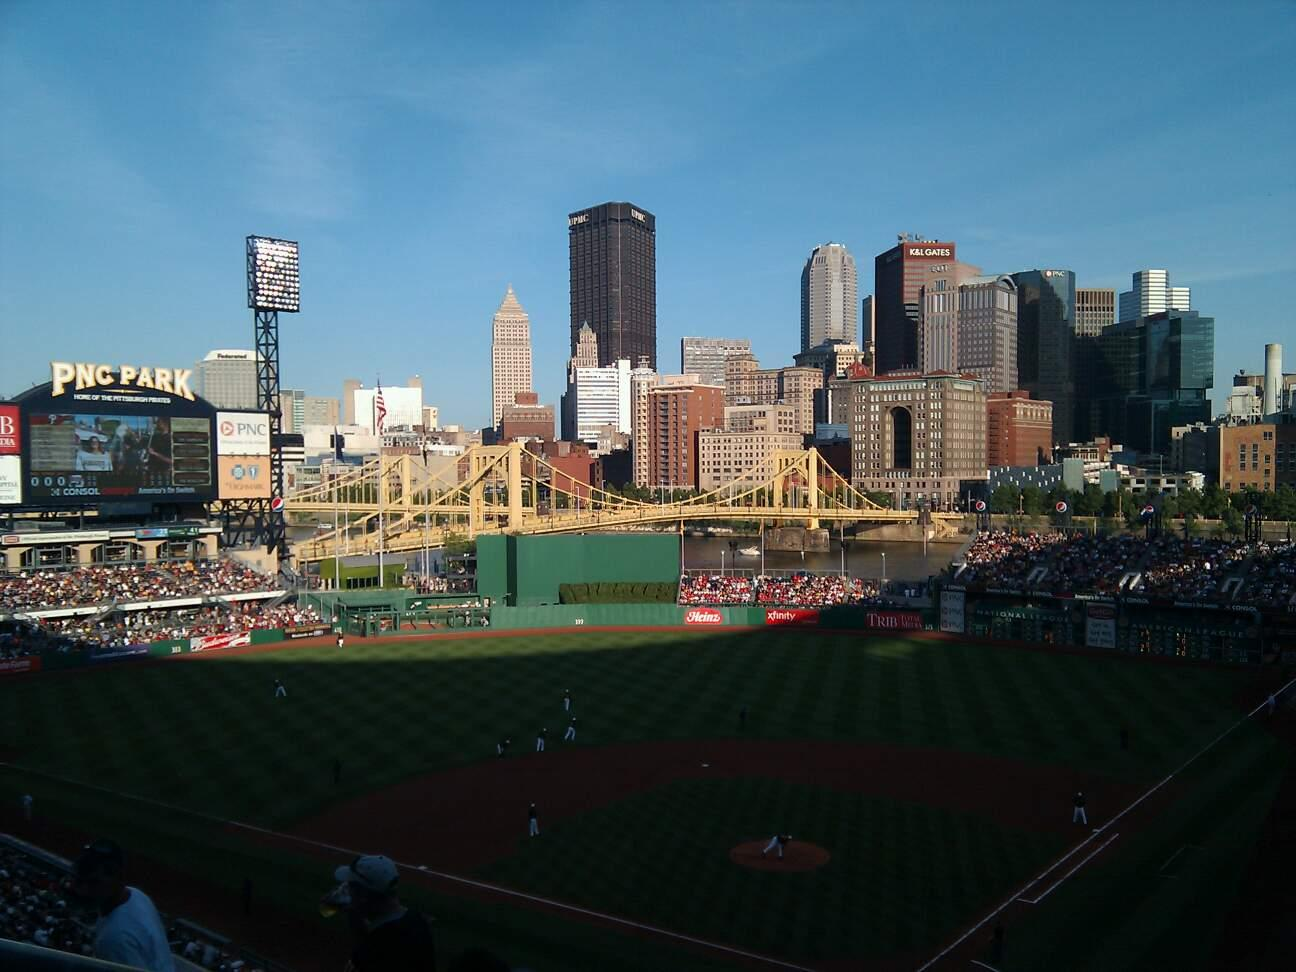 PNC Park Section 217 Row j Seat 16